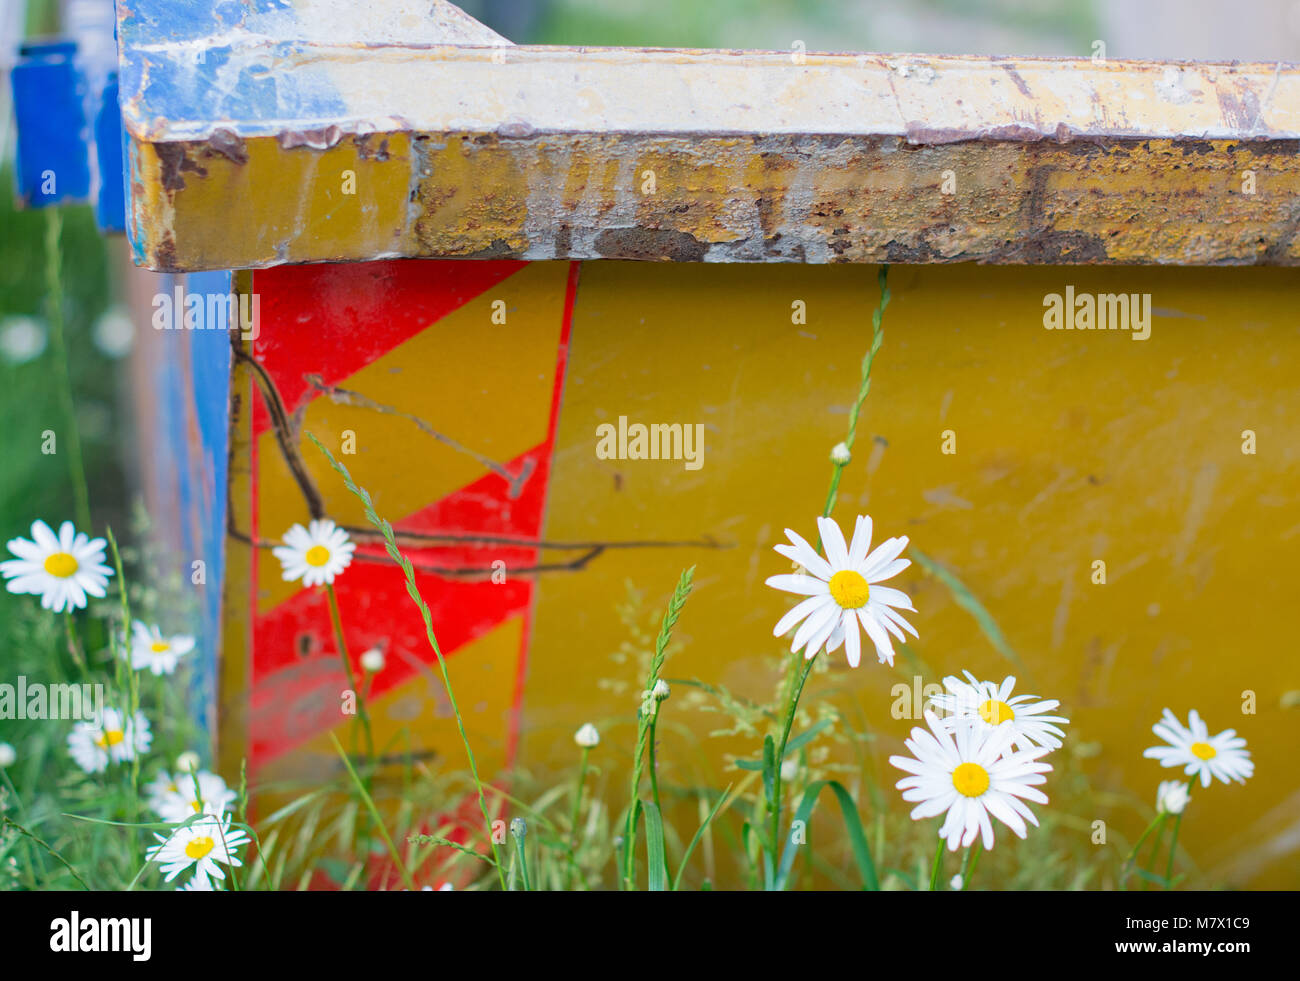 bright yellow steel dumpster with daisy signifying urban renewal - Stock Image